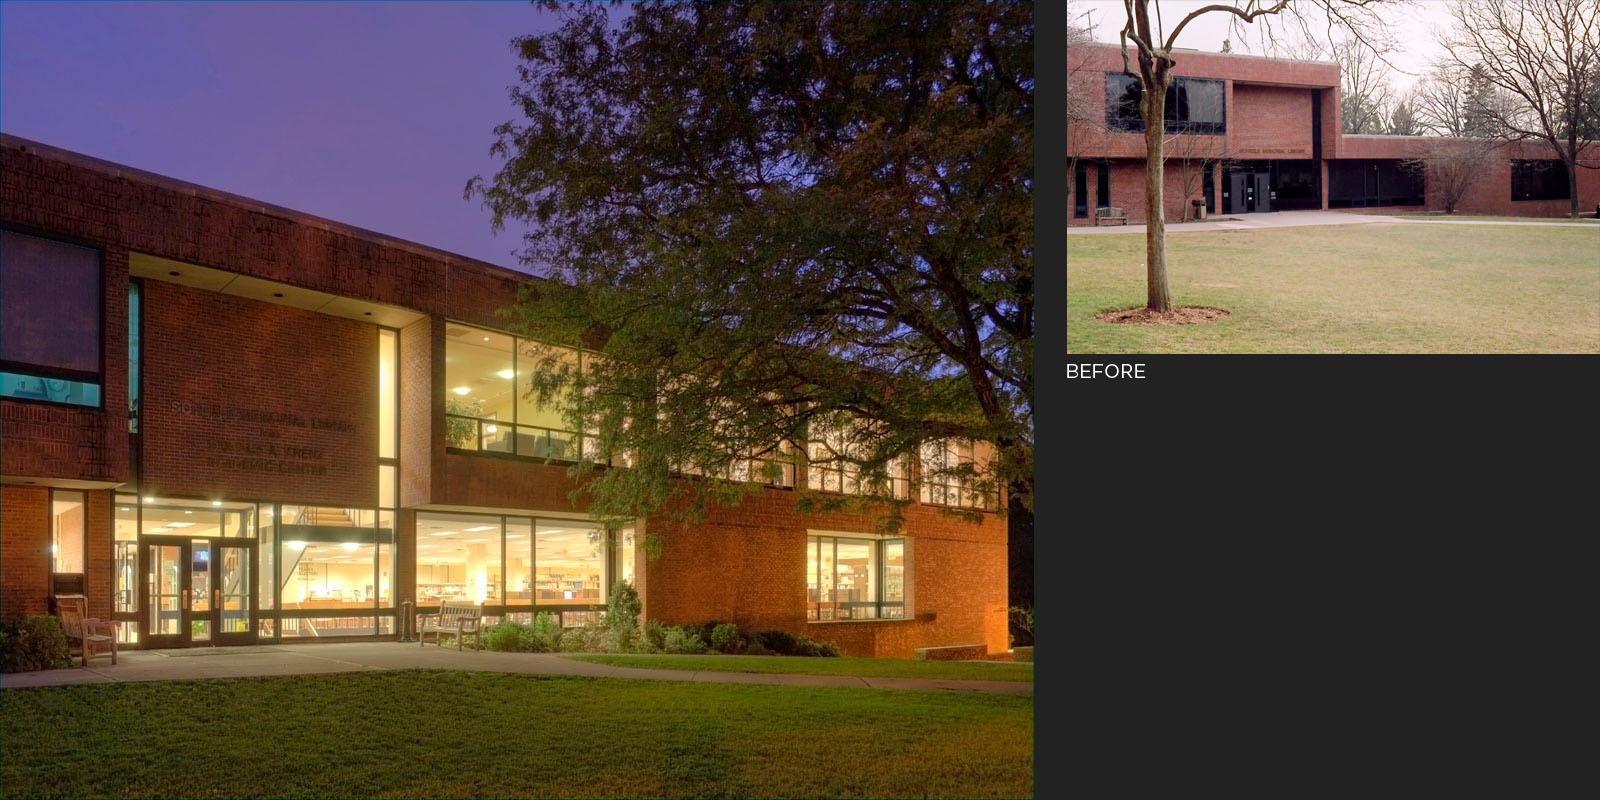 The Scheele Library and Krenz Academic Center after expansion (left); the Scheele Library before expansion (right).